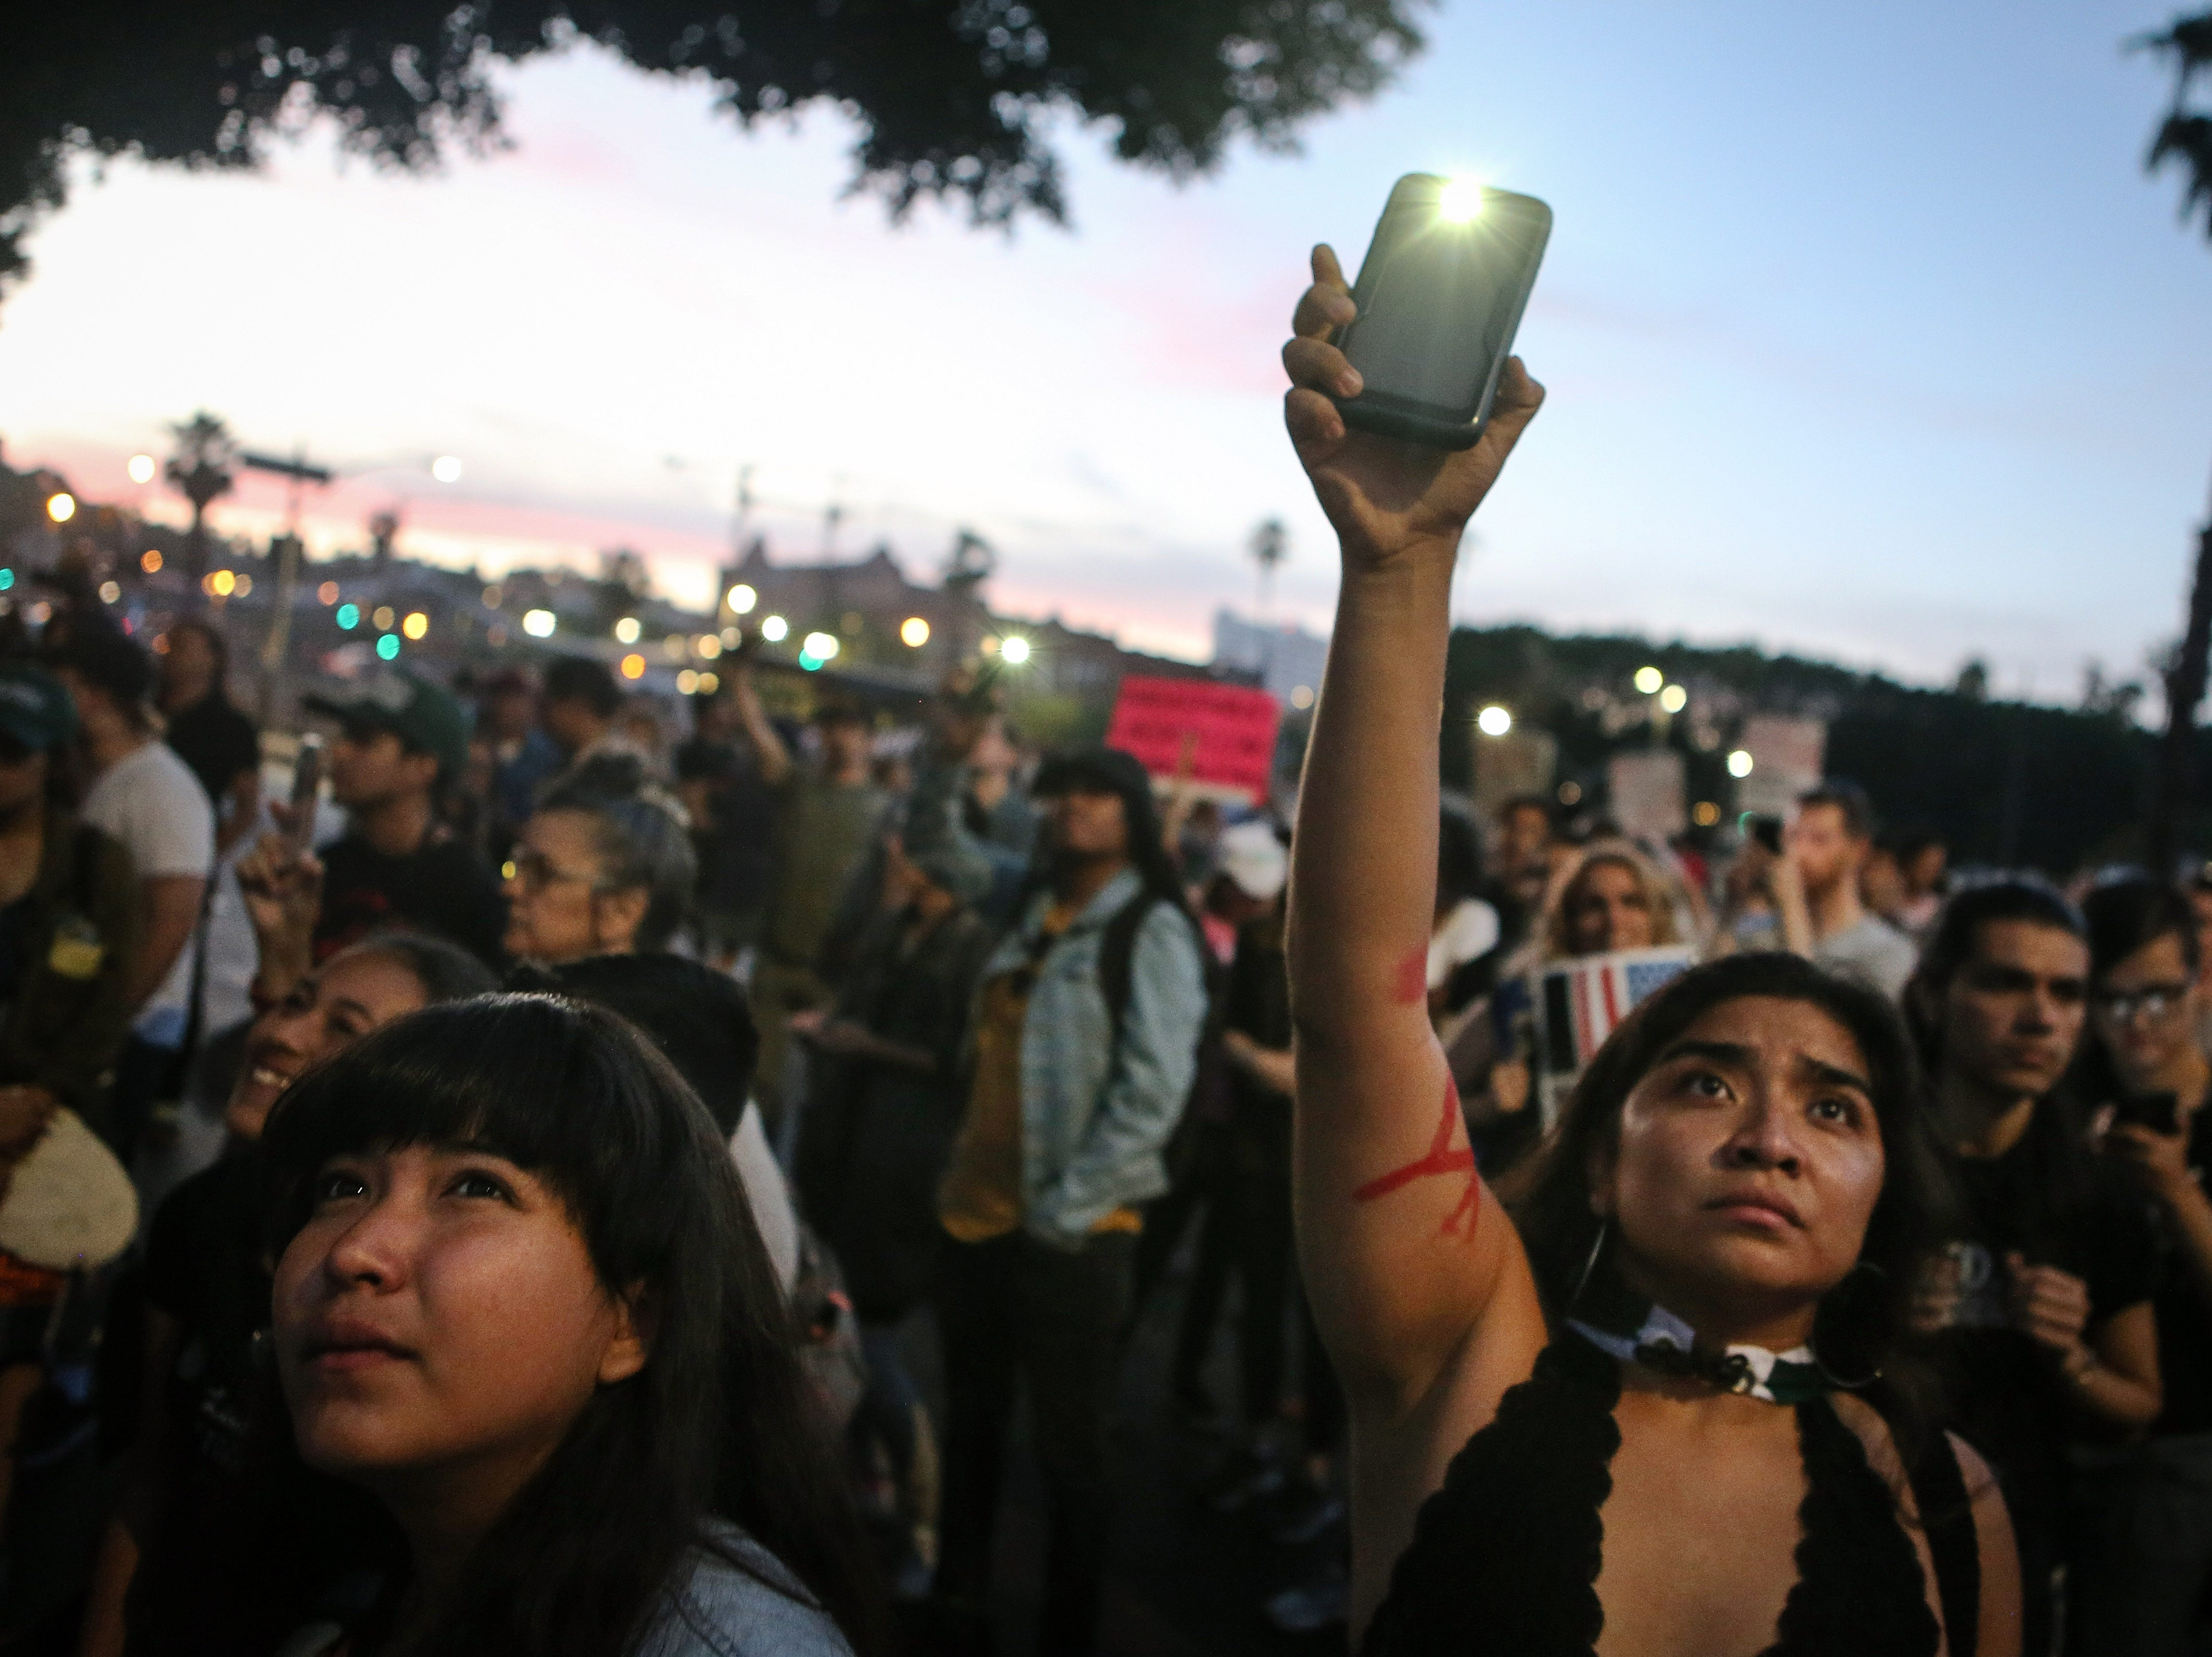 """June 15, 2018: A protestor waves her phone flashlight in the direction of cell windows where ICE detainees are being held in upper floors of the Metropolitan Detention Center in Los Angeles, Calif. Protestors at one point chanted """"You Are Not Alone"""" towards the detained as the detainees flashed lights back from small cell windows inside the detention center. U.S. Immigration and Customs Enforcement recently arrested 162 undocumented immigrants during a three-day operation in Los Angeles and surrounding areas."""